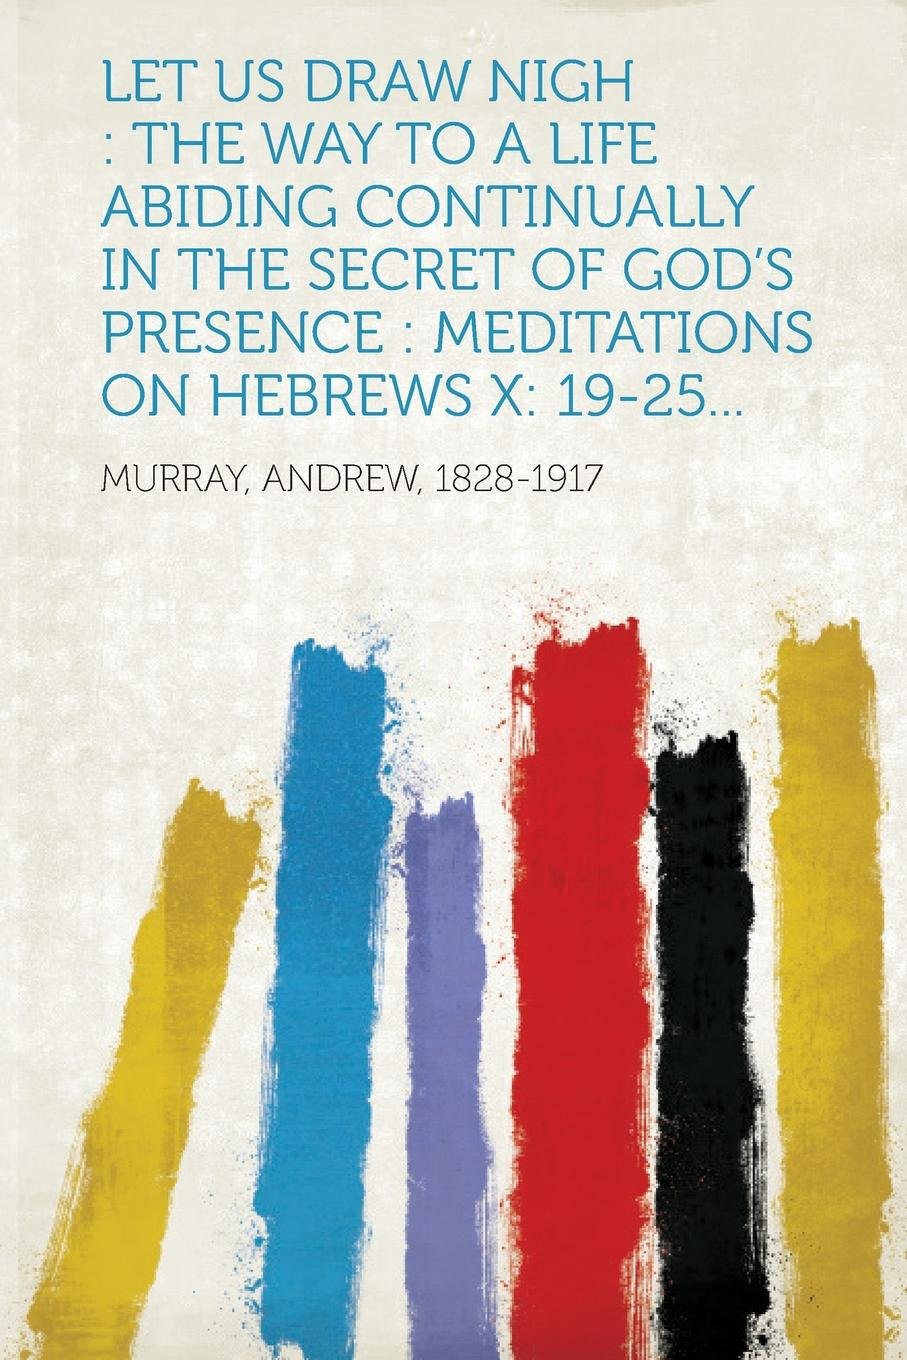 Let Us Draw Nigh: The Way to a Life Abiding Continually in the Secret of God's Presence: Meditations on Hebrews X: 19-25... pdf epub